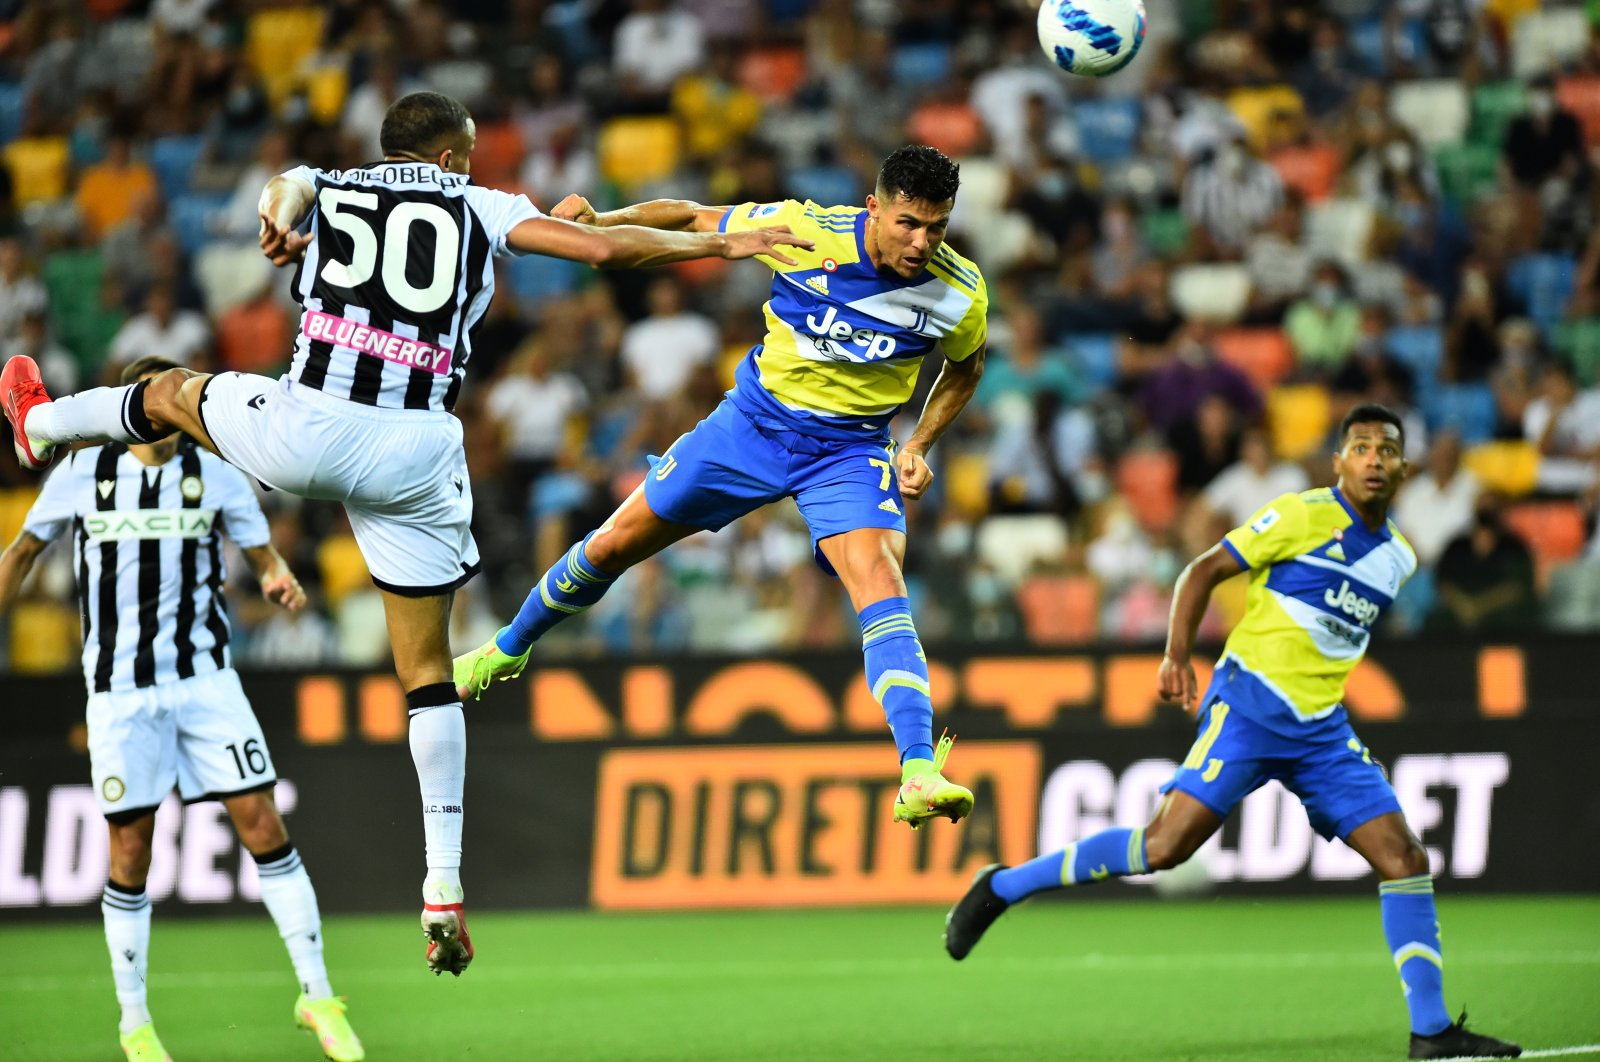 Juventus' Cristiano Ronaldo scores a goal that is later disallowed after a VAR review during a Serie A match against Udinese at the Dacia Arena, Udine, Italy, Aug. 22, 2021. (Reuters Photo)